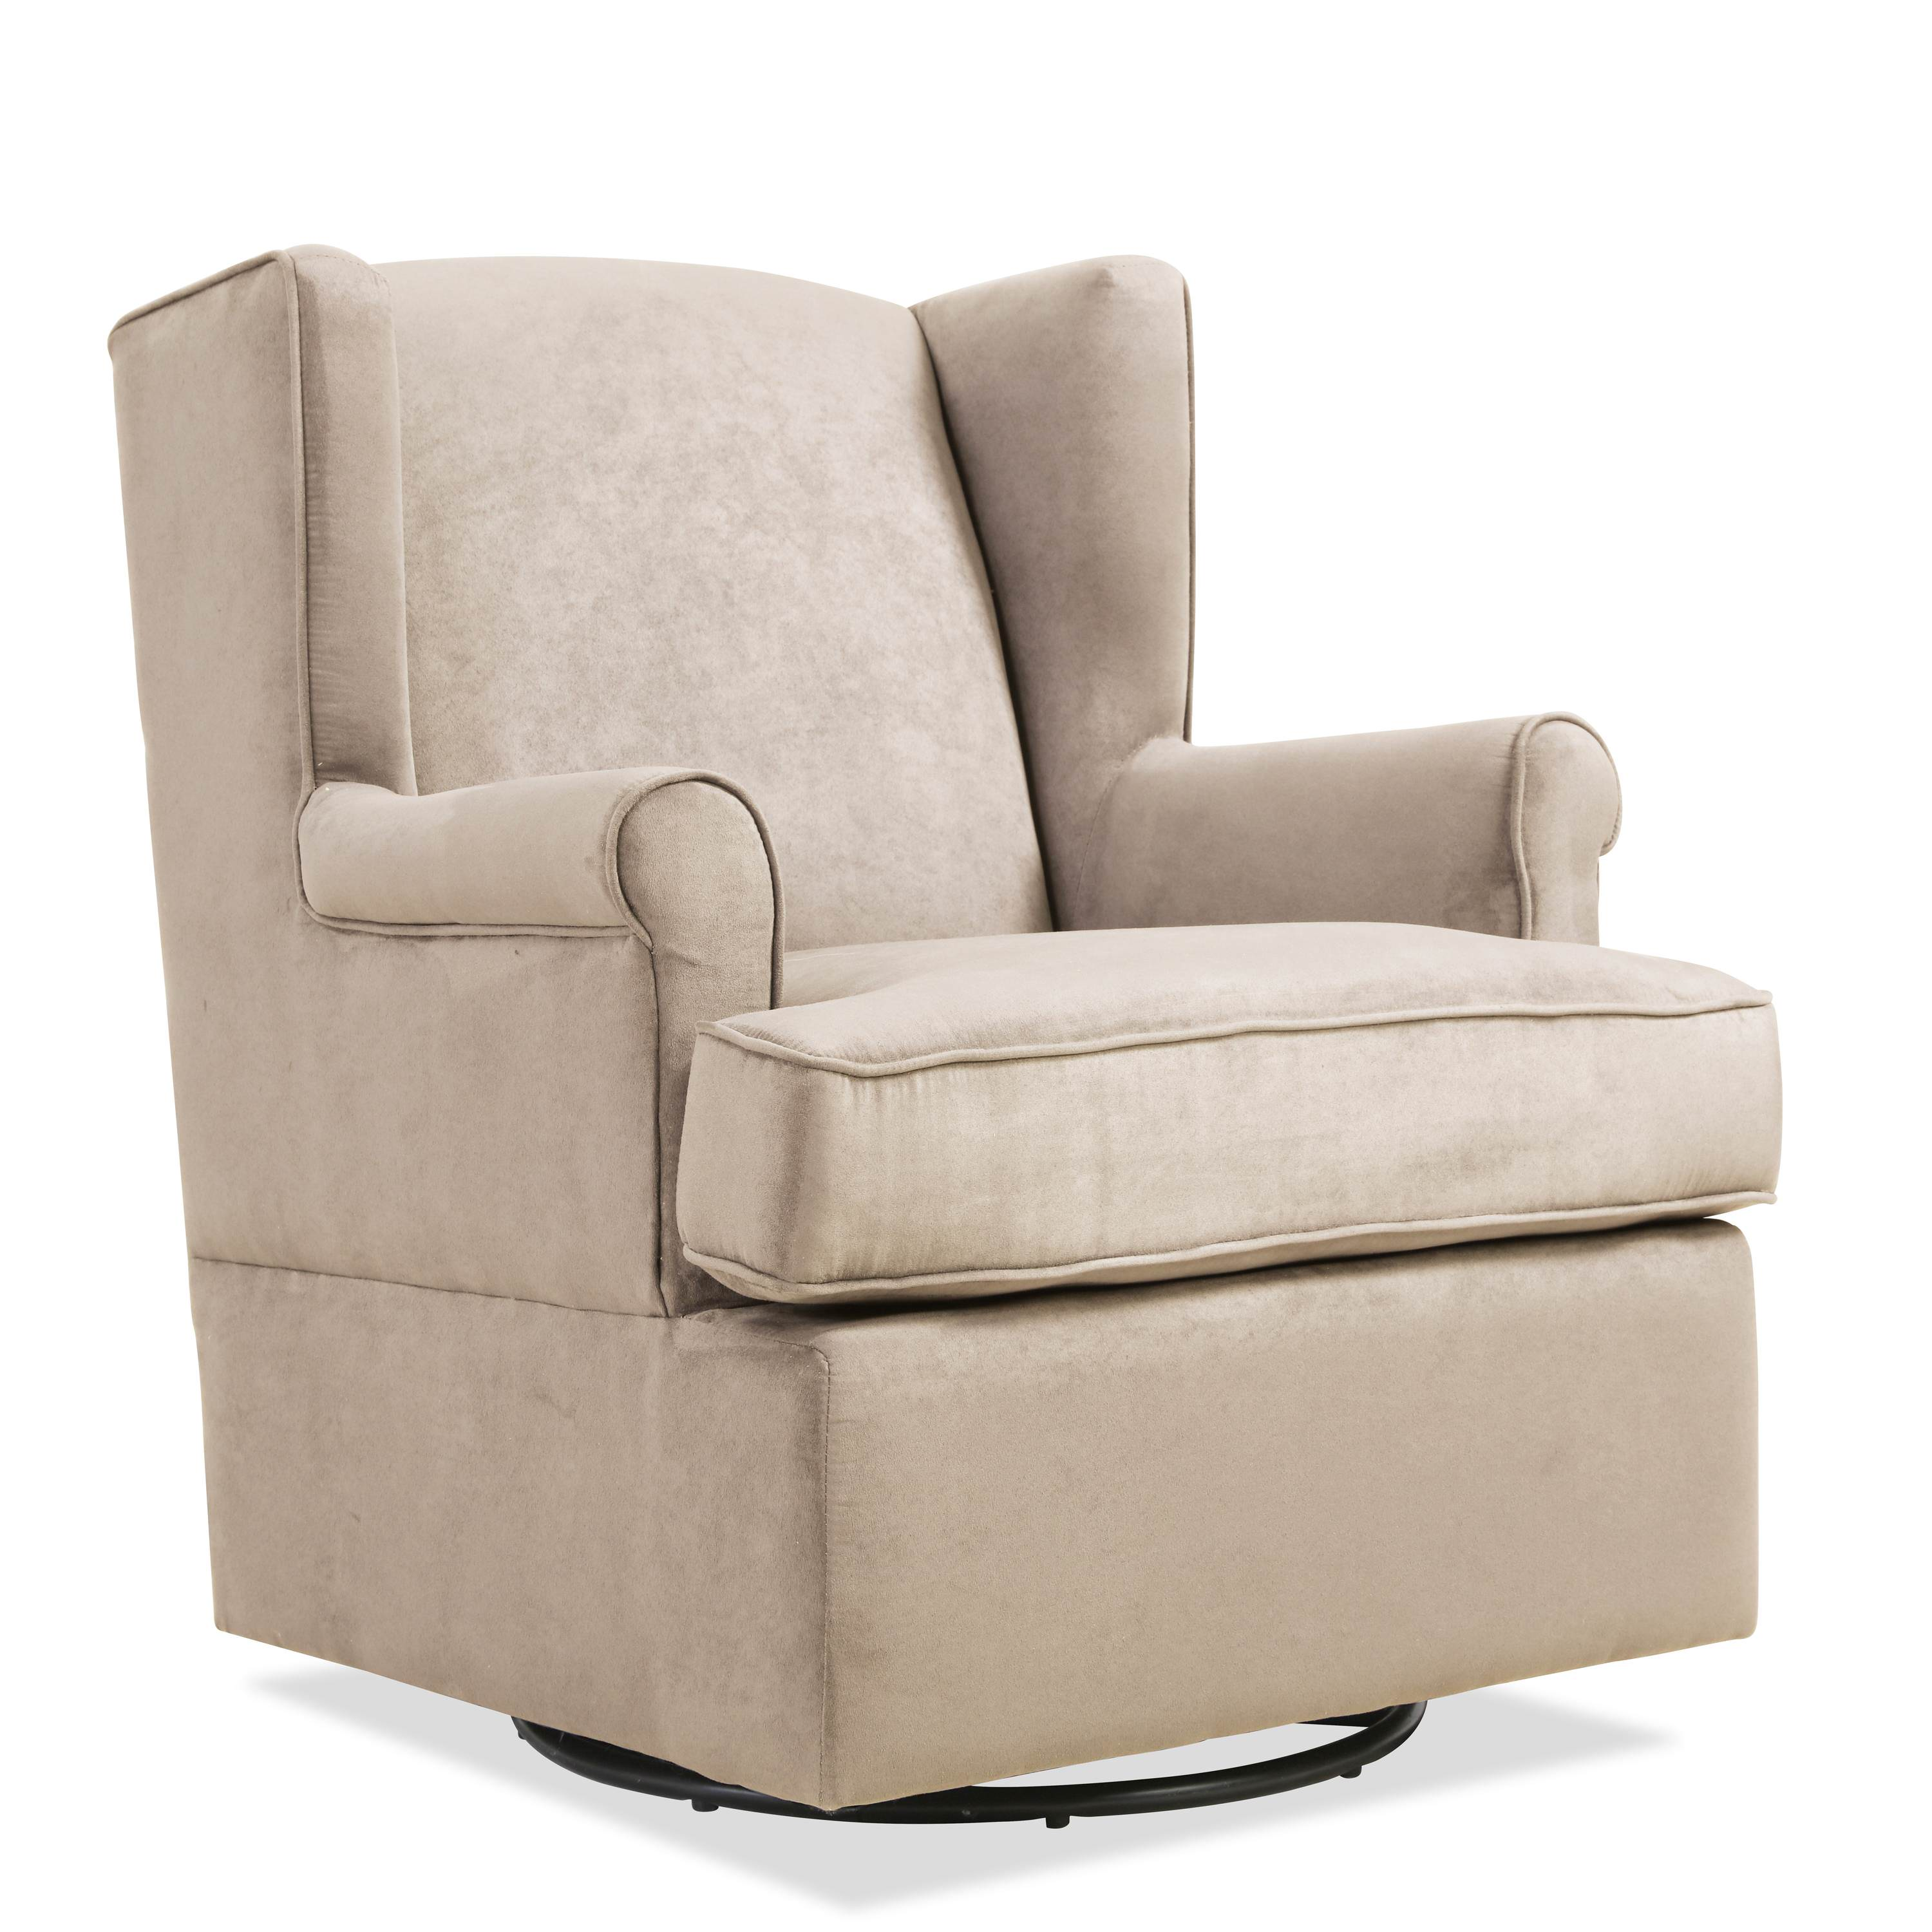 Handy Living Frederick Swivel Glider Arm Chair, Khaki